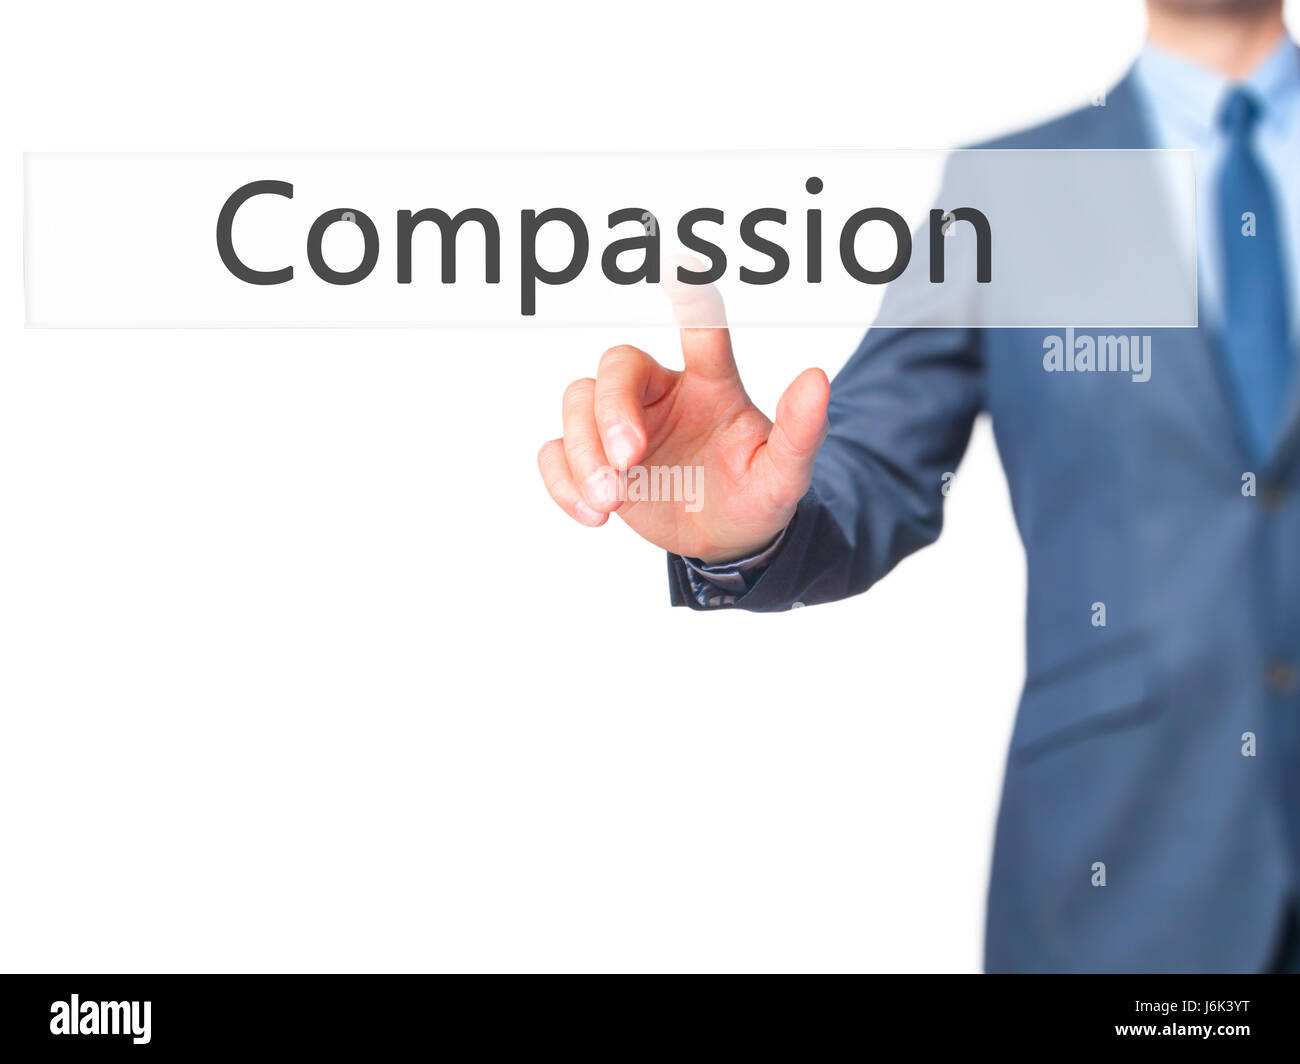 Compassion - Businessman click on virtual touchscreen. Business and IT concept. Stock Photo Stock Photo